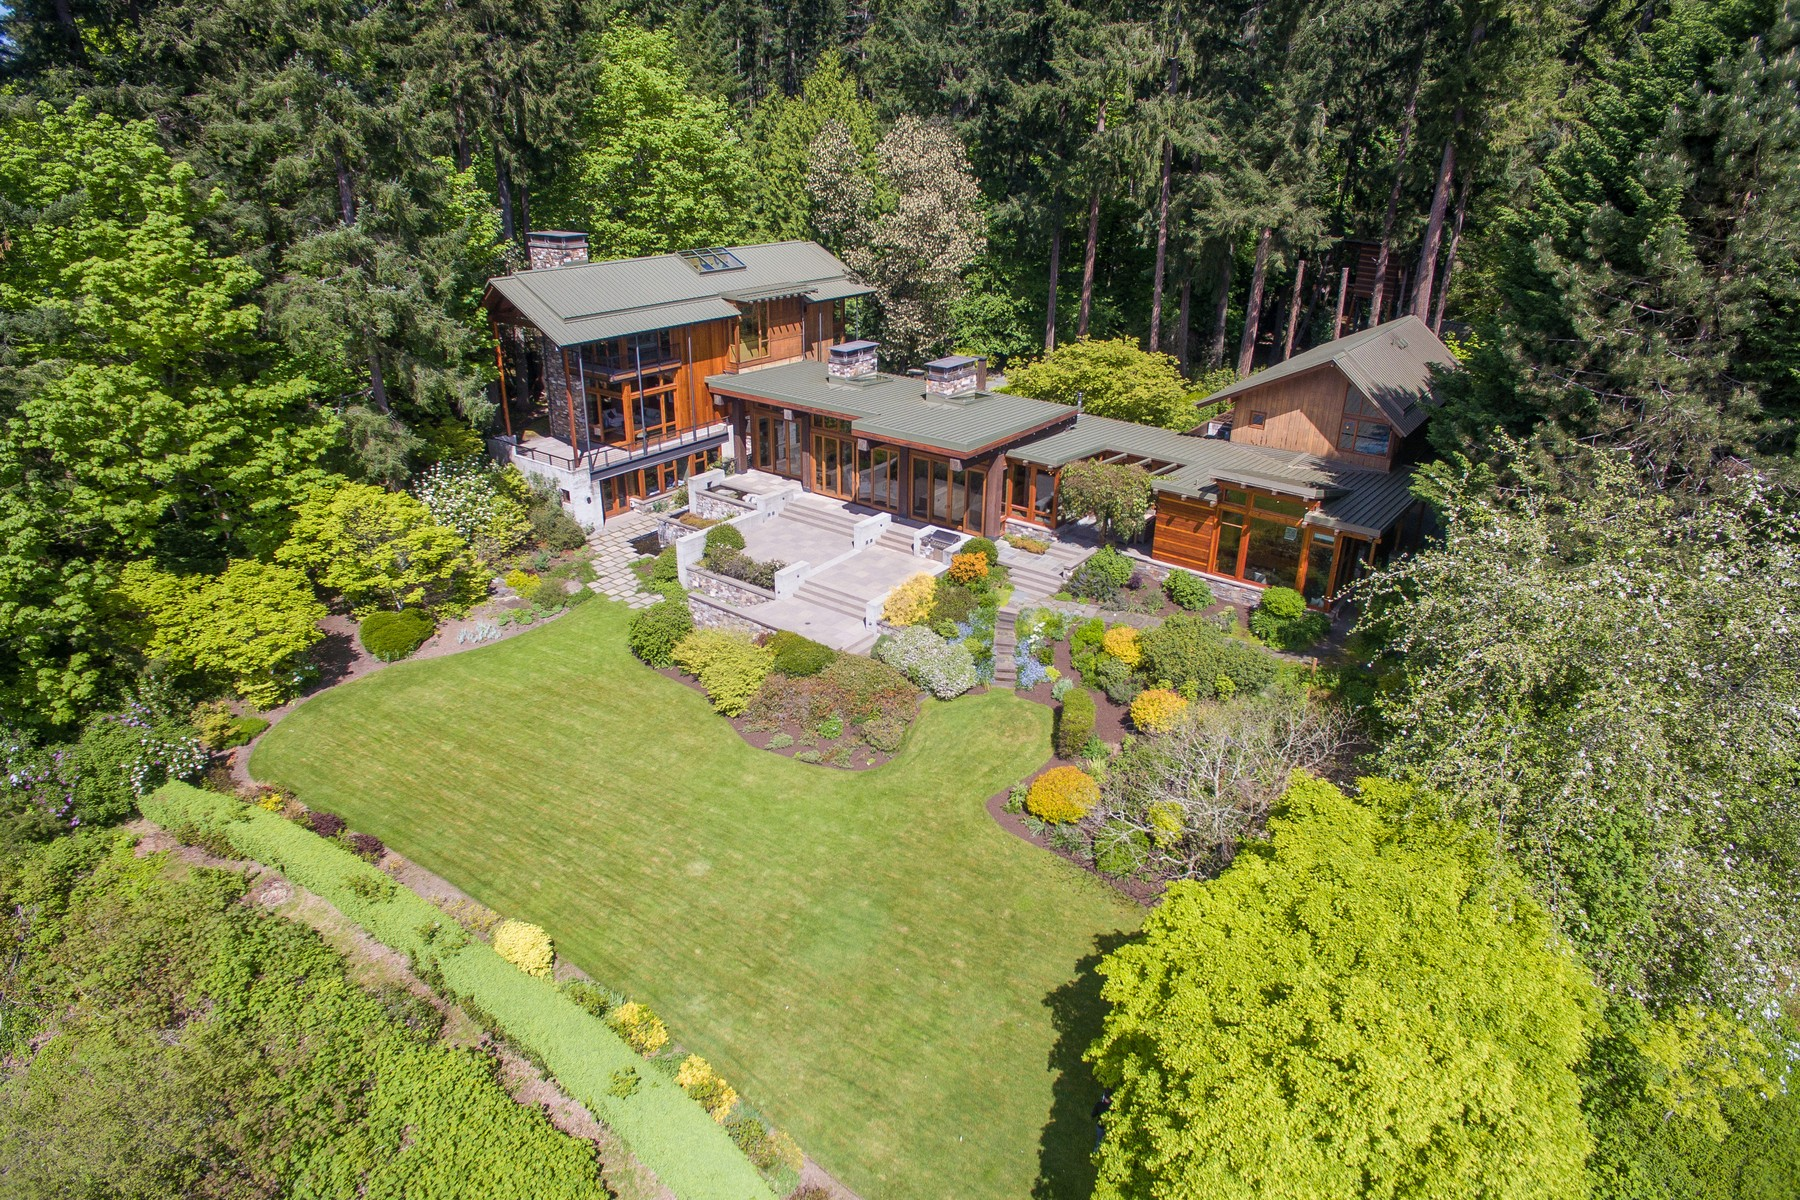 Maison unifamiliale pour l Vente à Picturesque waterfront estate 8888 Res5/3 Undisclosed Bainbridge Island, Washington 98110 États-Unis